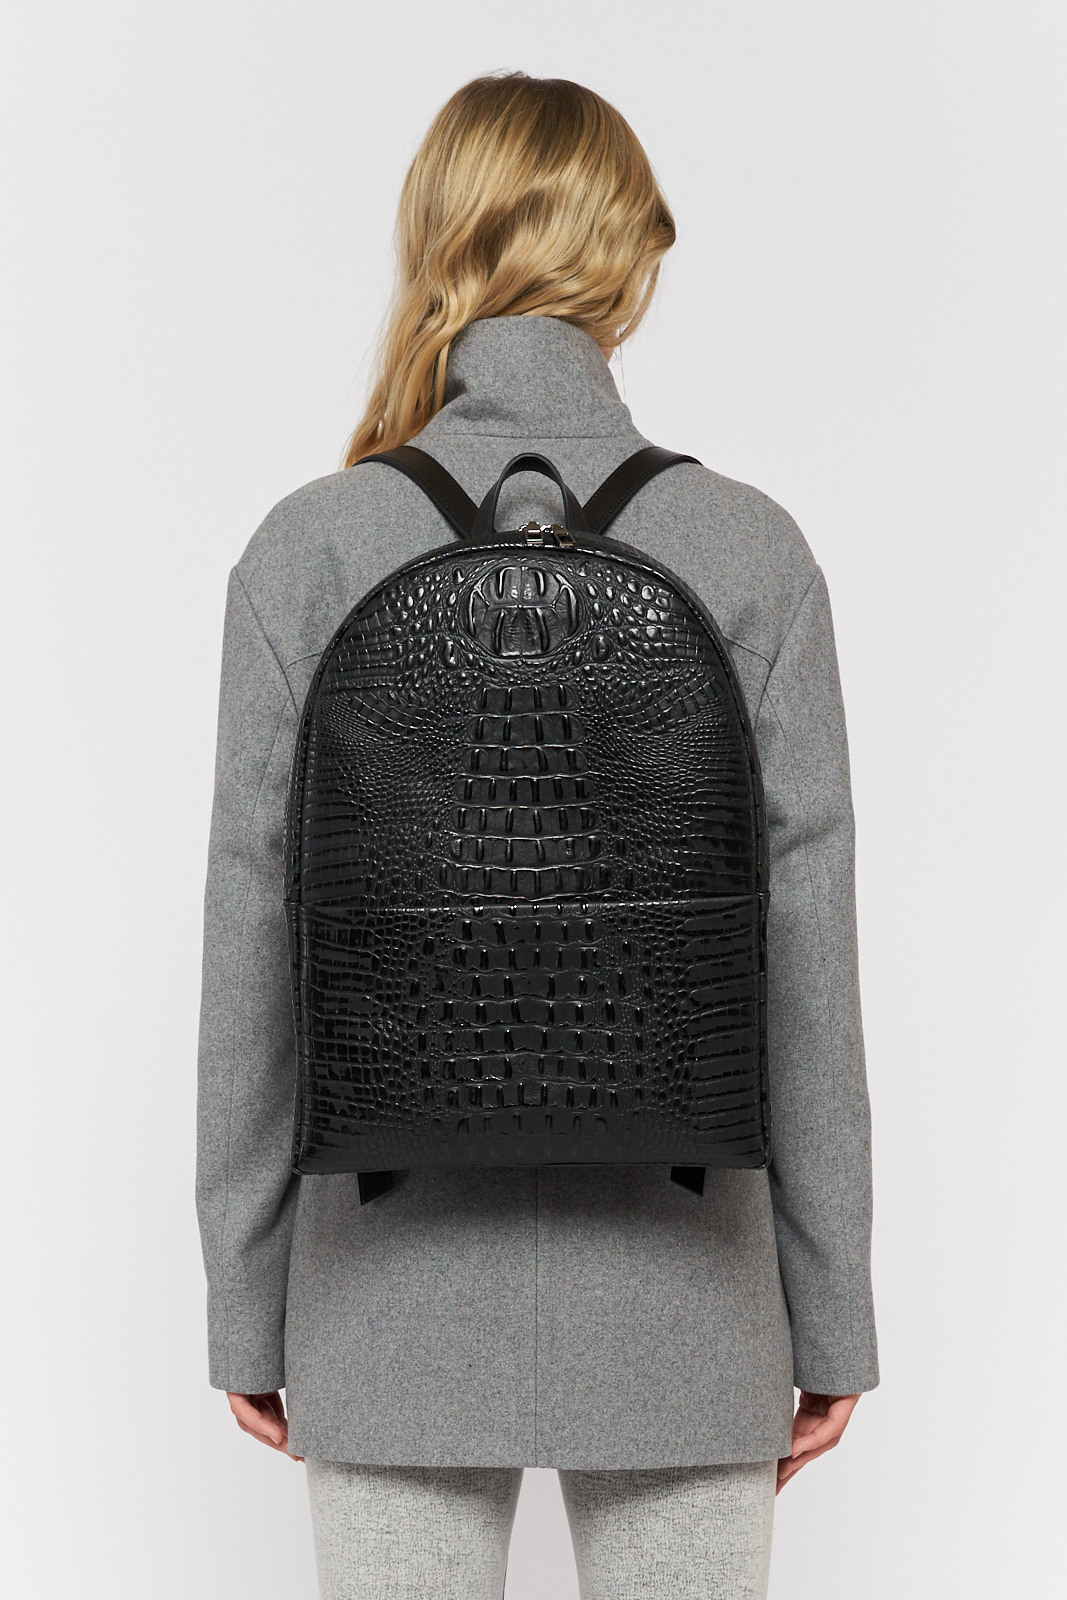 Asya Malbershtein  Ö1 backpack